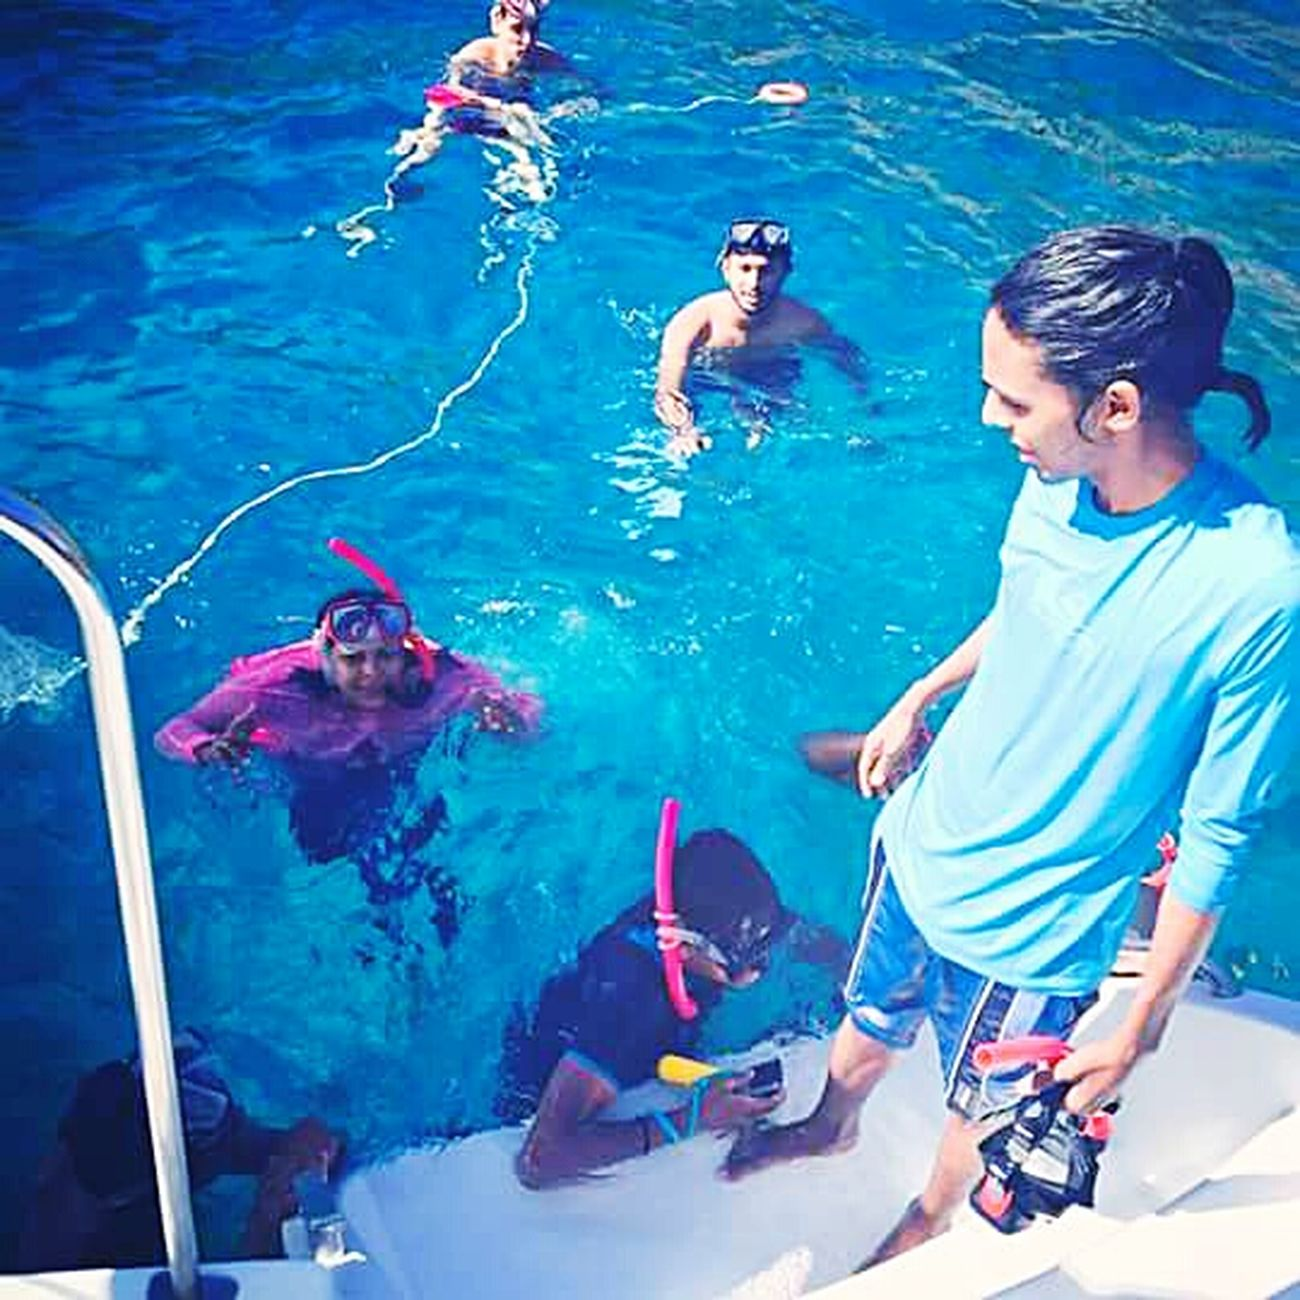 Summertime Catamaranboat Leisure Activity Diving Aqualife Aquabeauty Another World